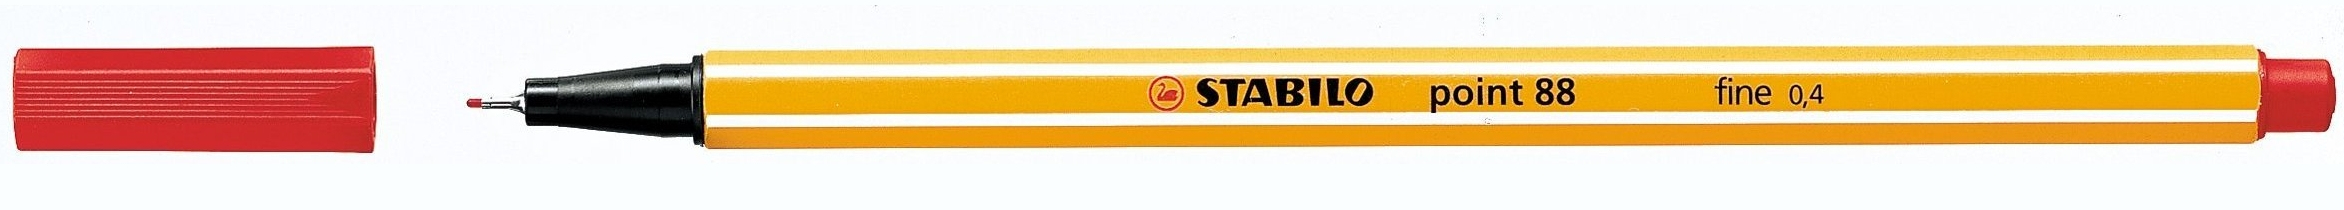 88/40 stabilo Stabilo Point 88 Pen Fineliner 0.4mm Red 88/40 - (pk10) - AD01